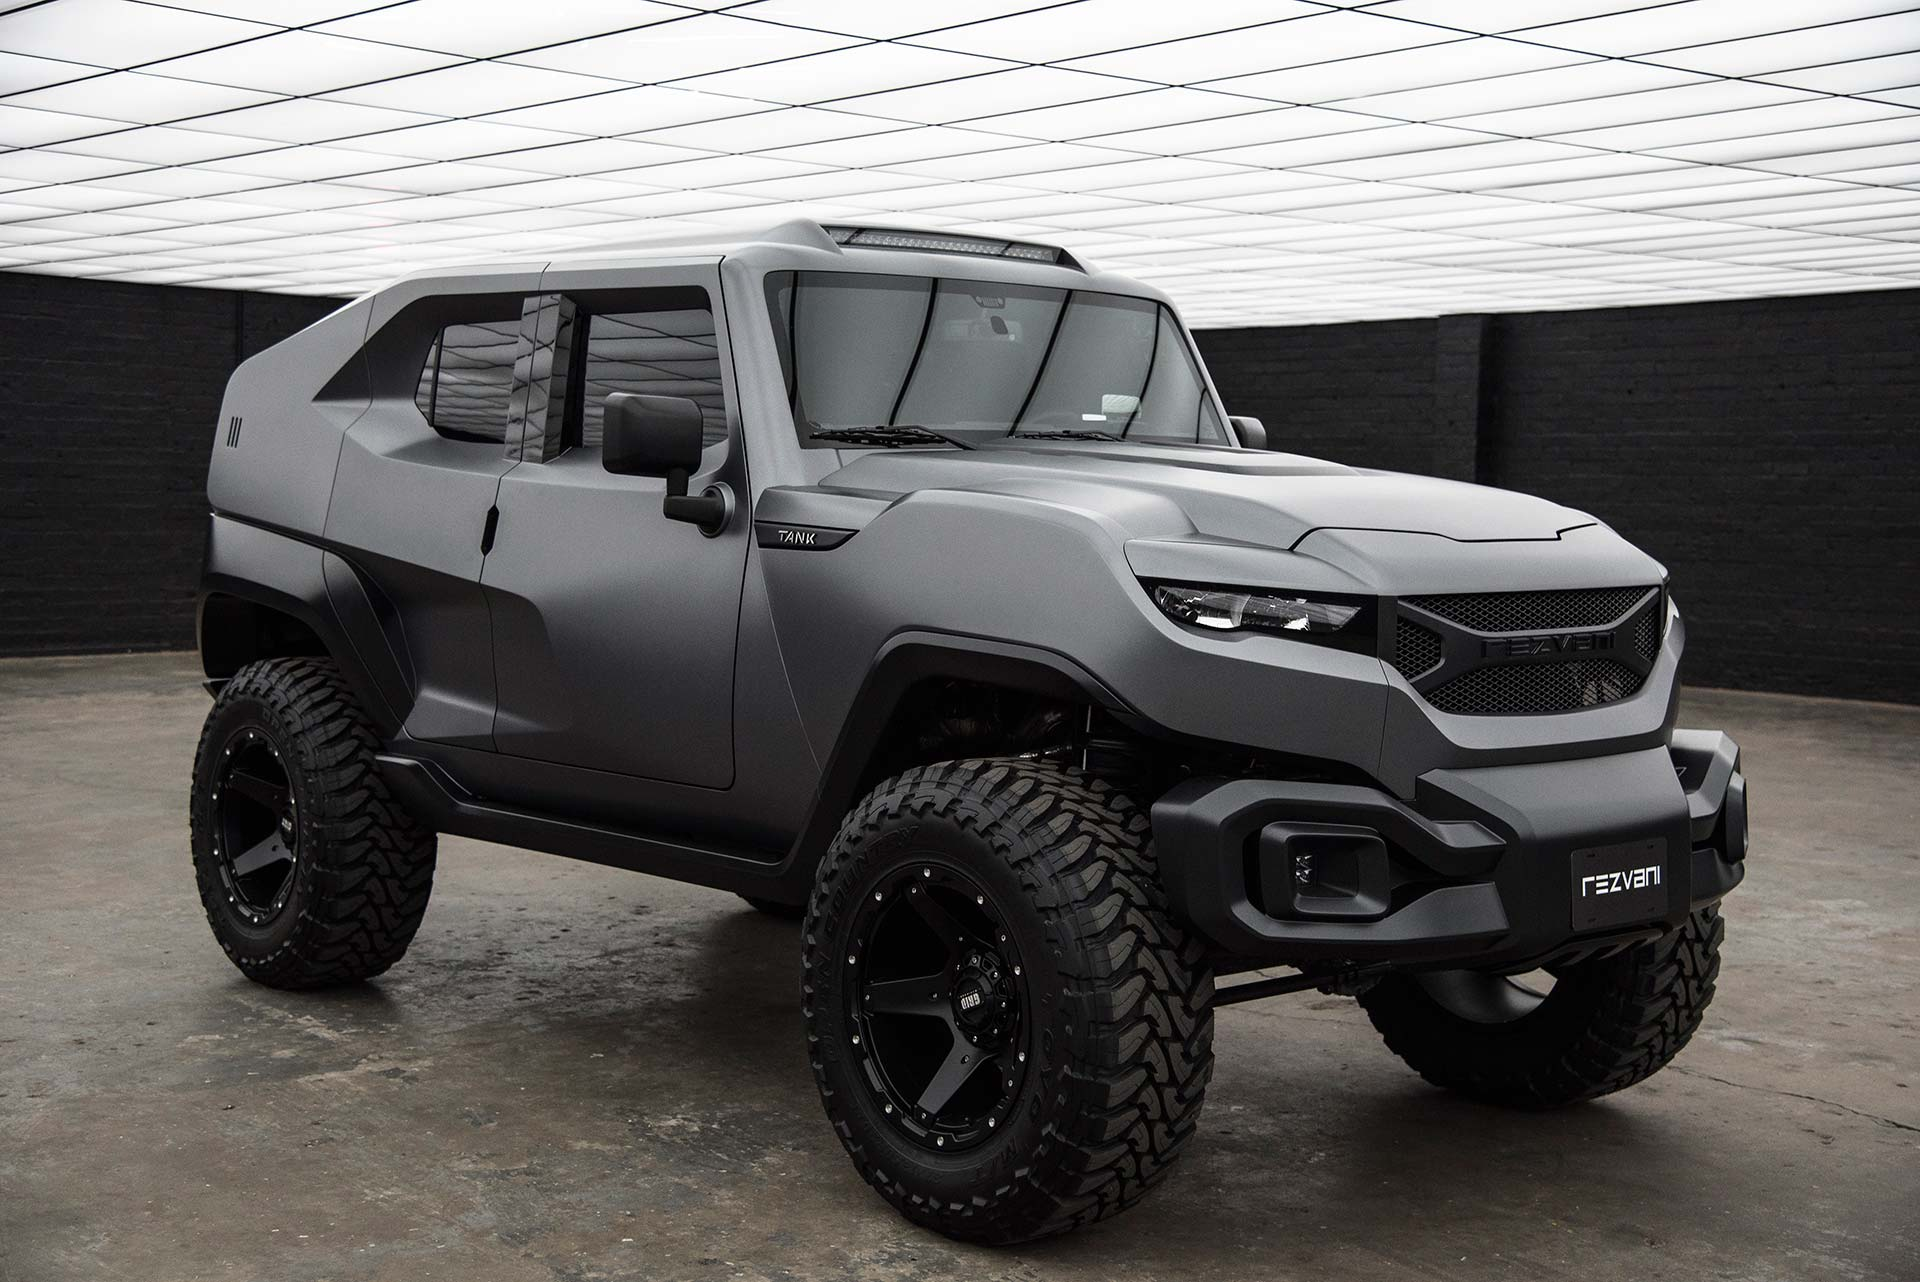 Rezvani Tank SUV Revealed with Big Engine Bigger Price Tag